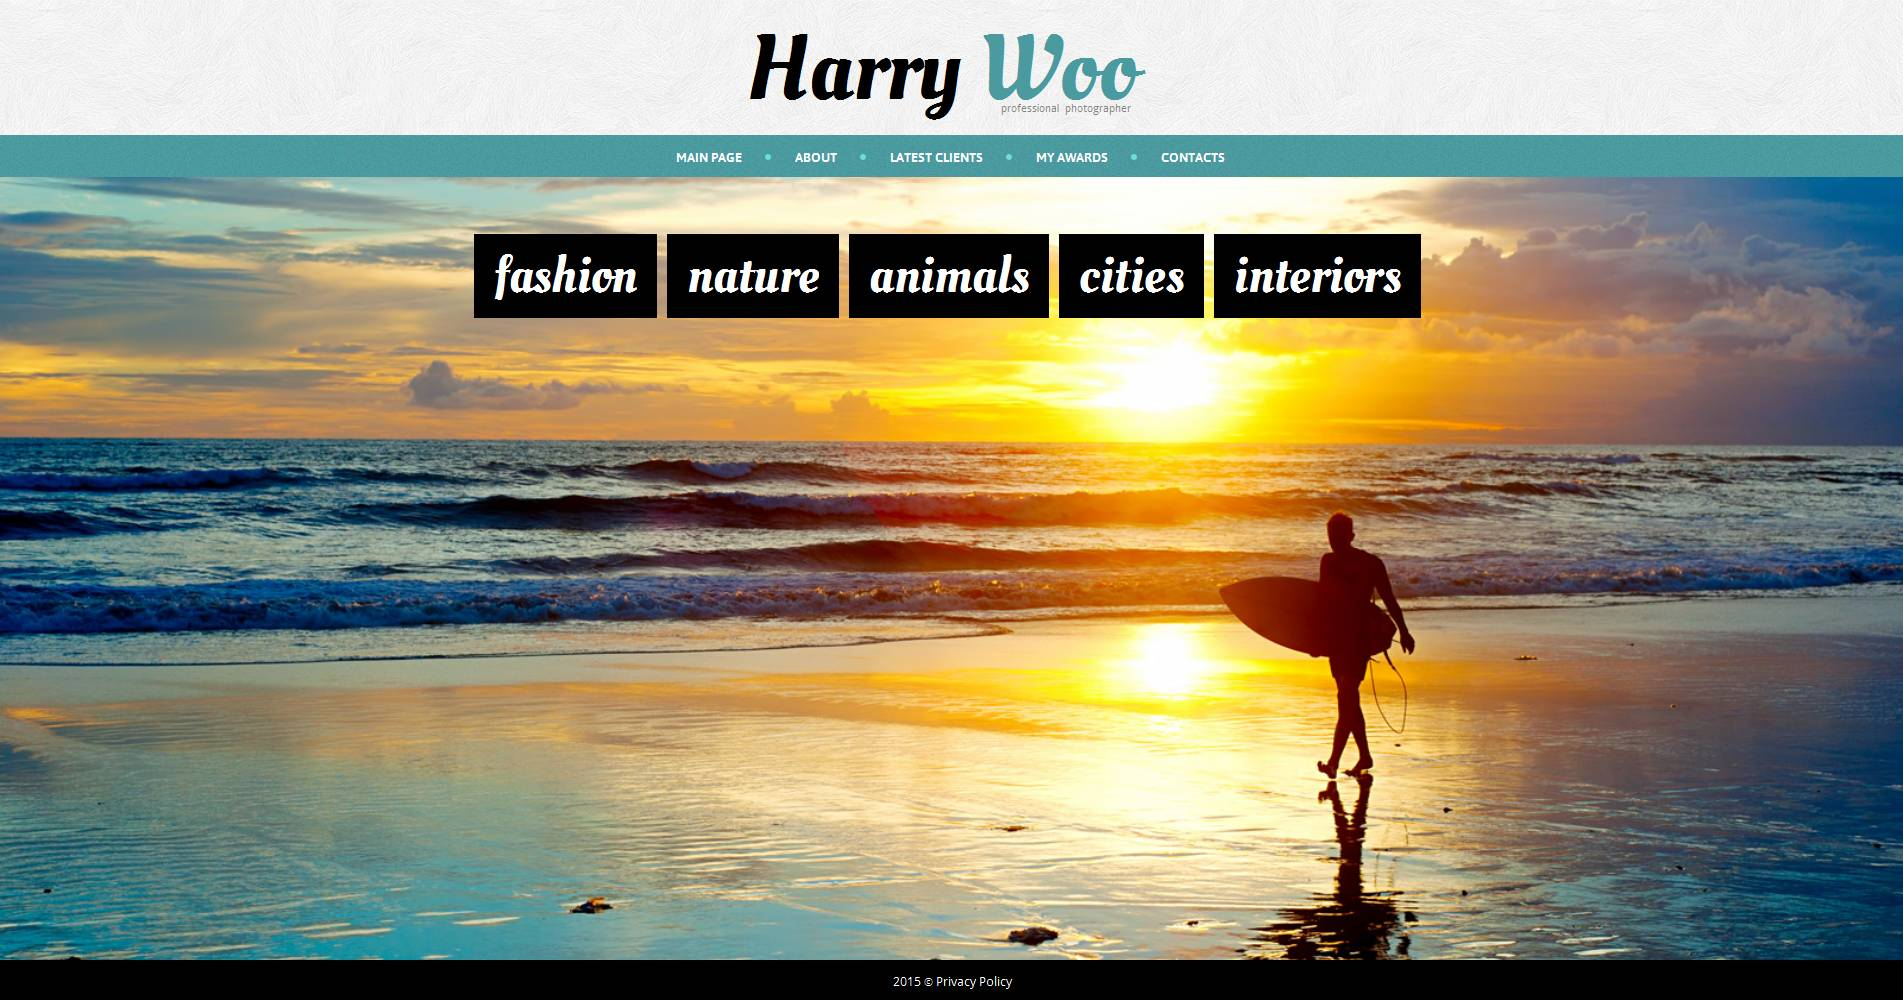 The Harry Woo Photographer Photo Gallery 3.0 Design 53068, one of the best Photo Gallery templates of its kind (art & photography), also known as Harry Woo photographer Photo Gallery template, portfolio Photo Gallery template, photography Photo Gallery template, photos Photo Gallery template, camera Photo Gallery template, pictures Photo Gallery template, art gallery Photo Gallery template, digital cameras Photo Gallery template, picture company Photo Gallery template, models and related with Harry Woo photographer, portfolio, photography, photos, camera, pictures, art gallery, digital cameras, picture company, models, etc.